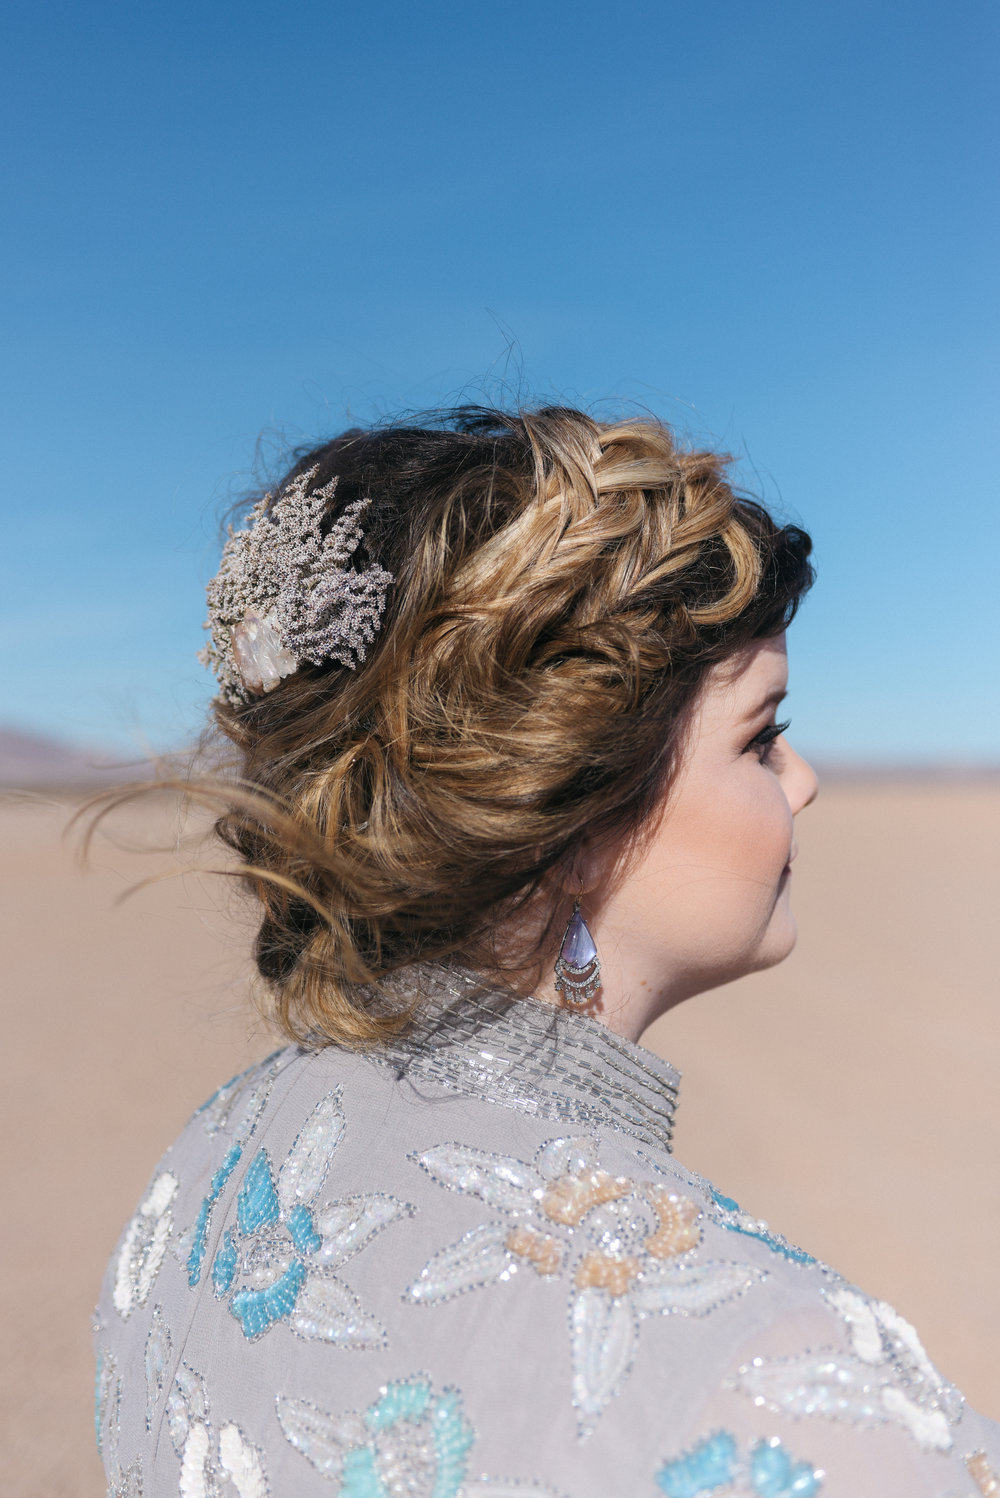 las vegas wedding, Elvis wedding, wedding las vegas, vintage wedding, vintage bride style, bridal style, fur wedding dress, vintage fur, desert wedding,